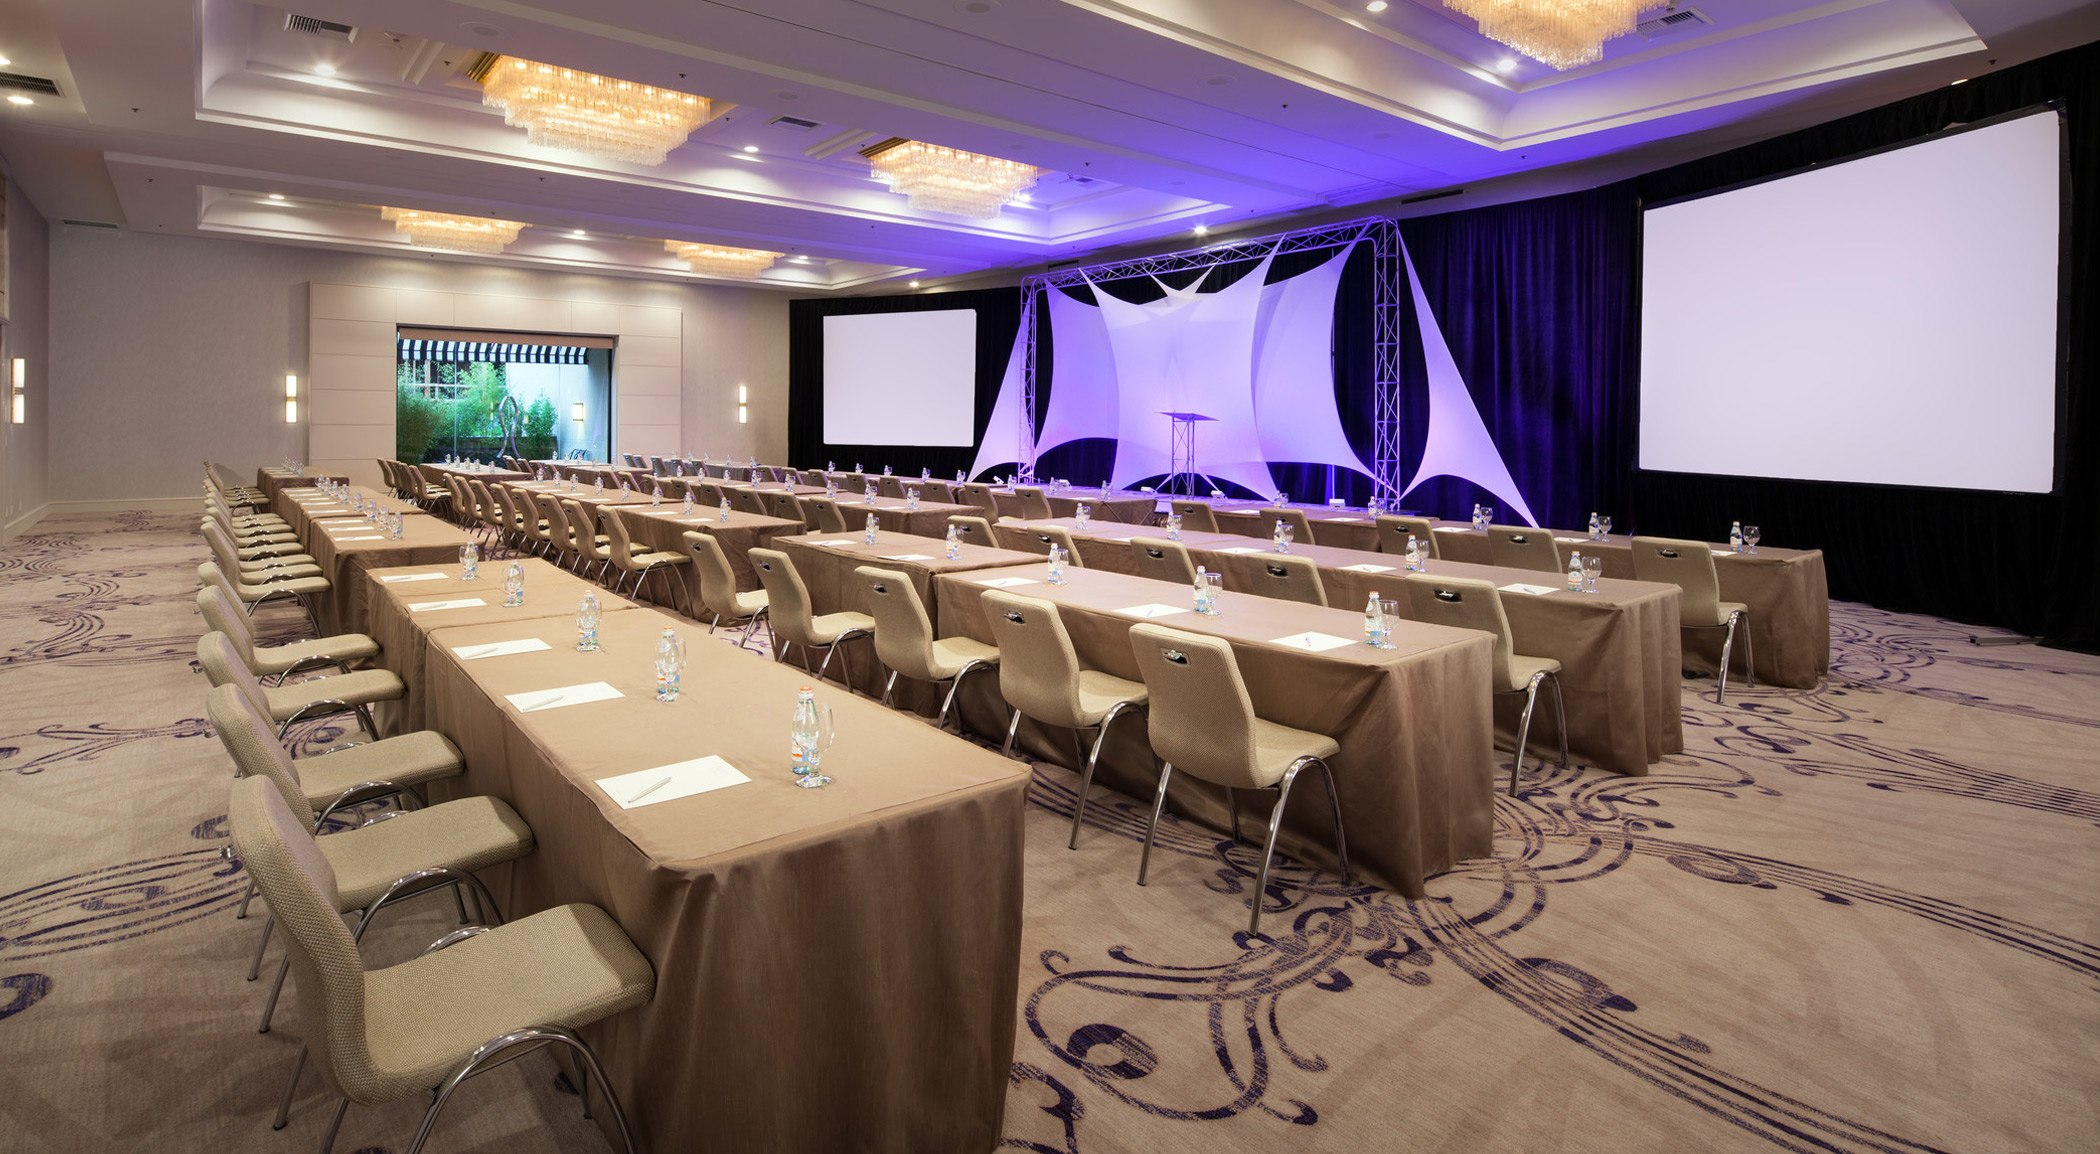 trp4399mf-209957-Ballroom-Meeting